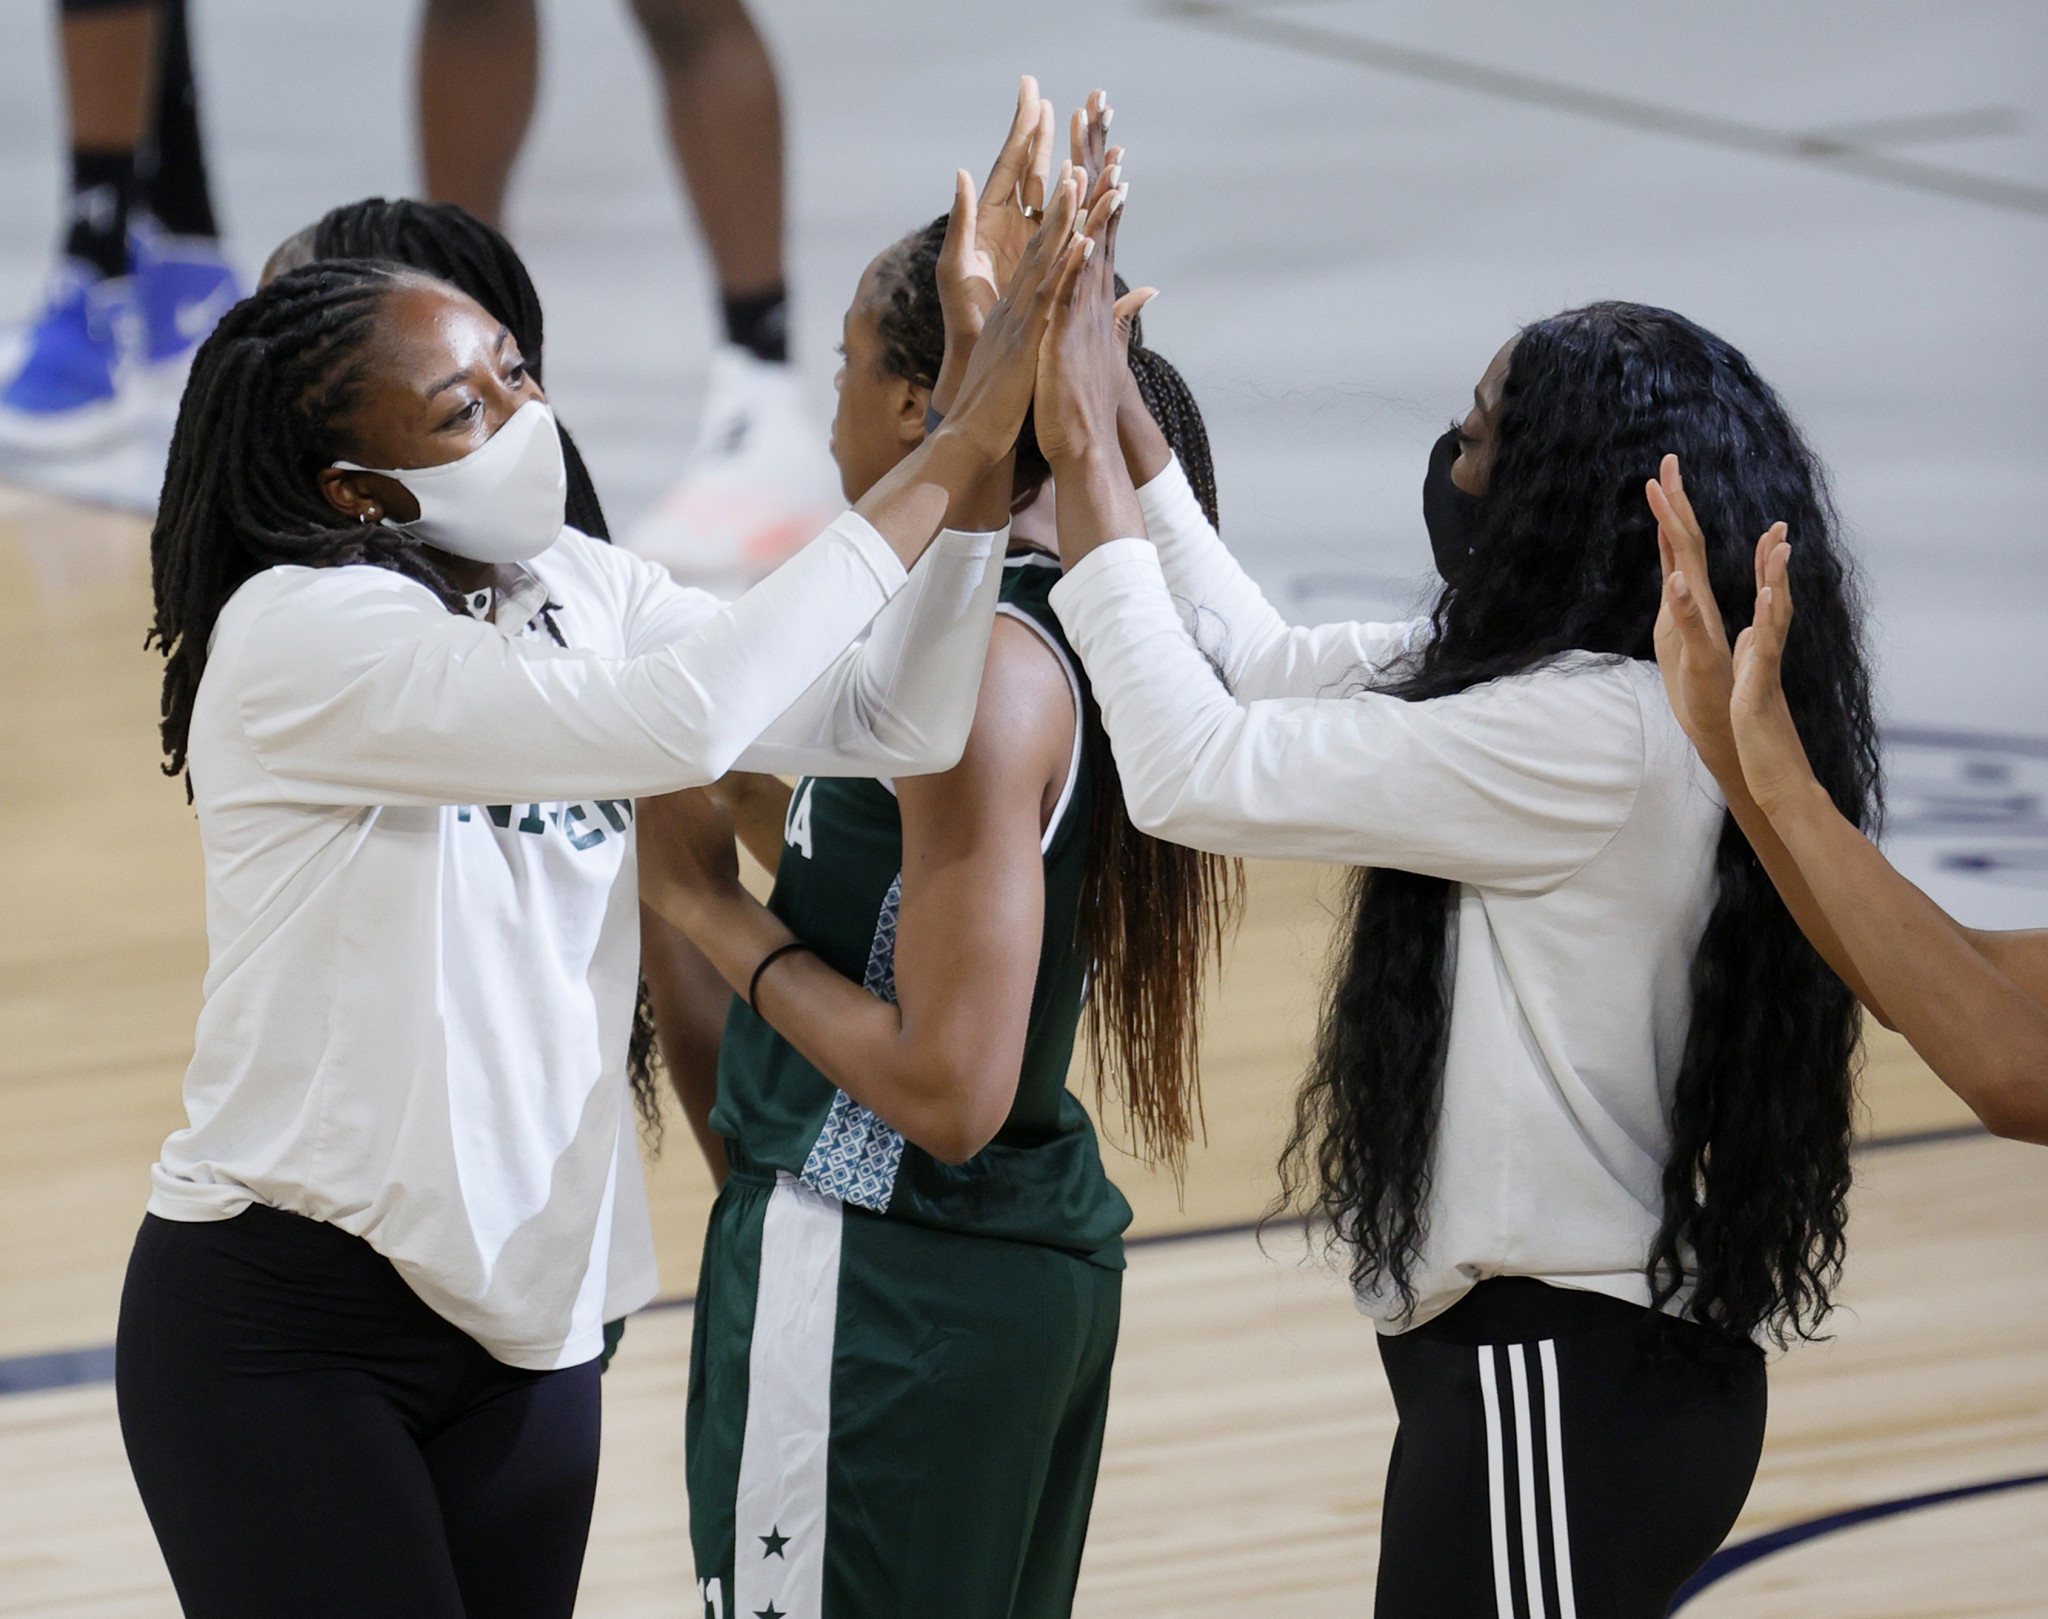 Nneka Ogwumike is introduced for Nigeria before an exhibition game against the US in Las Vegas on Saturday ©Getty Images